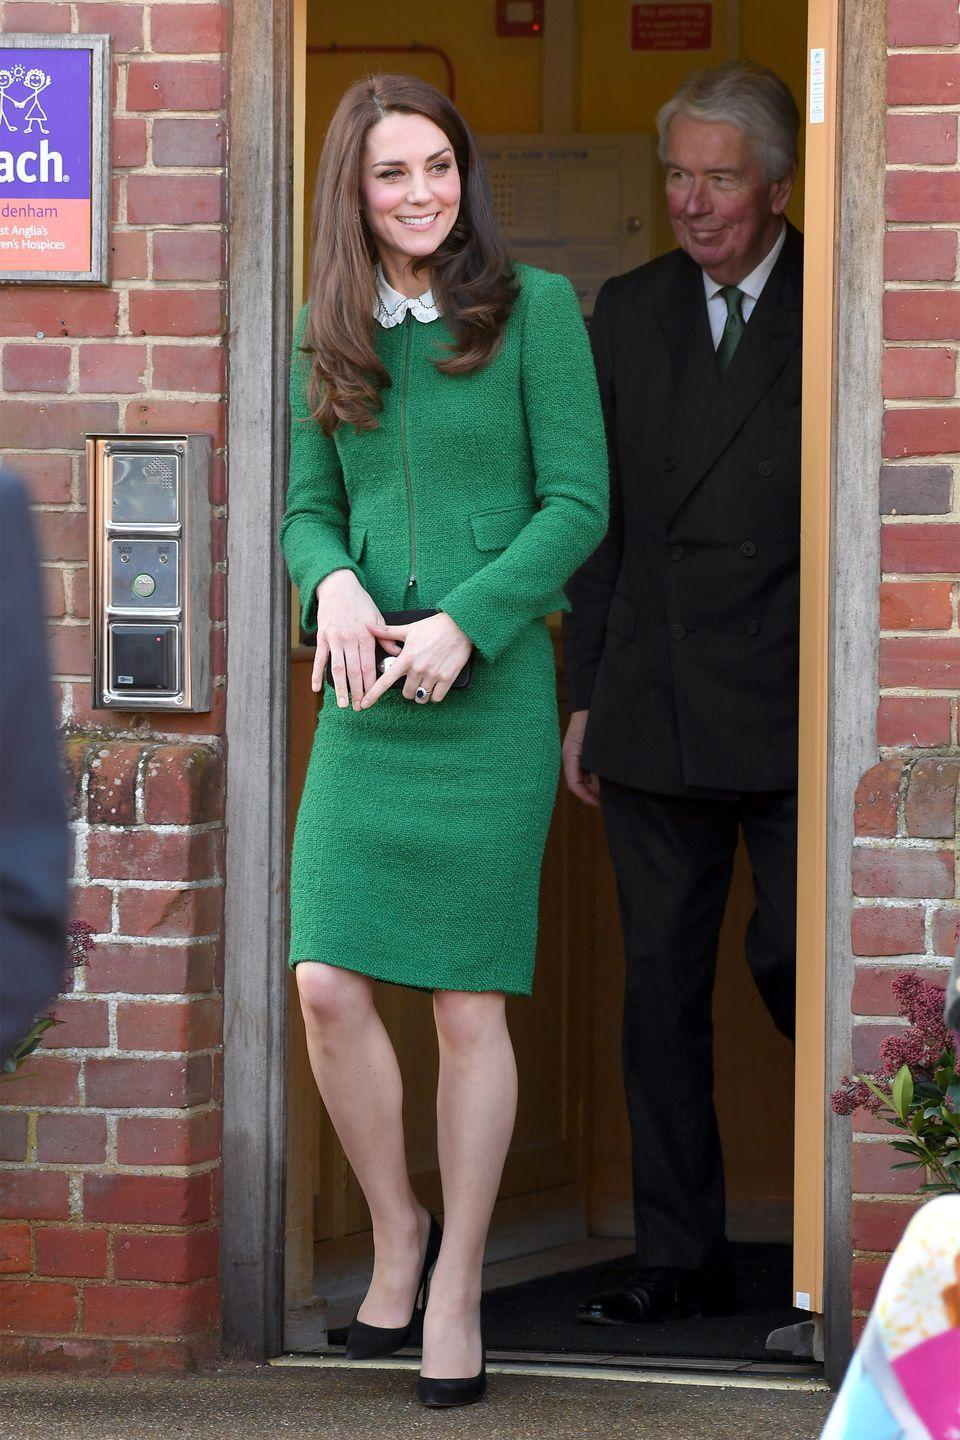 <p>The Duchess of Cambridge wears a green tweed skirt suit by Hobbs, black suede pumps by Gianvito Rossi and a black clutch while visiting East Anglia's Children's Hospice in Norfolk, England.</p>